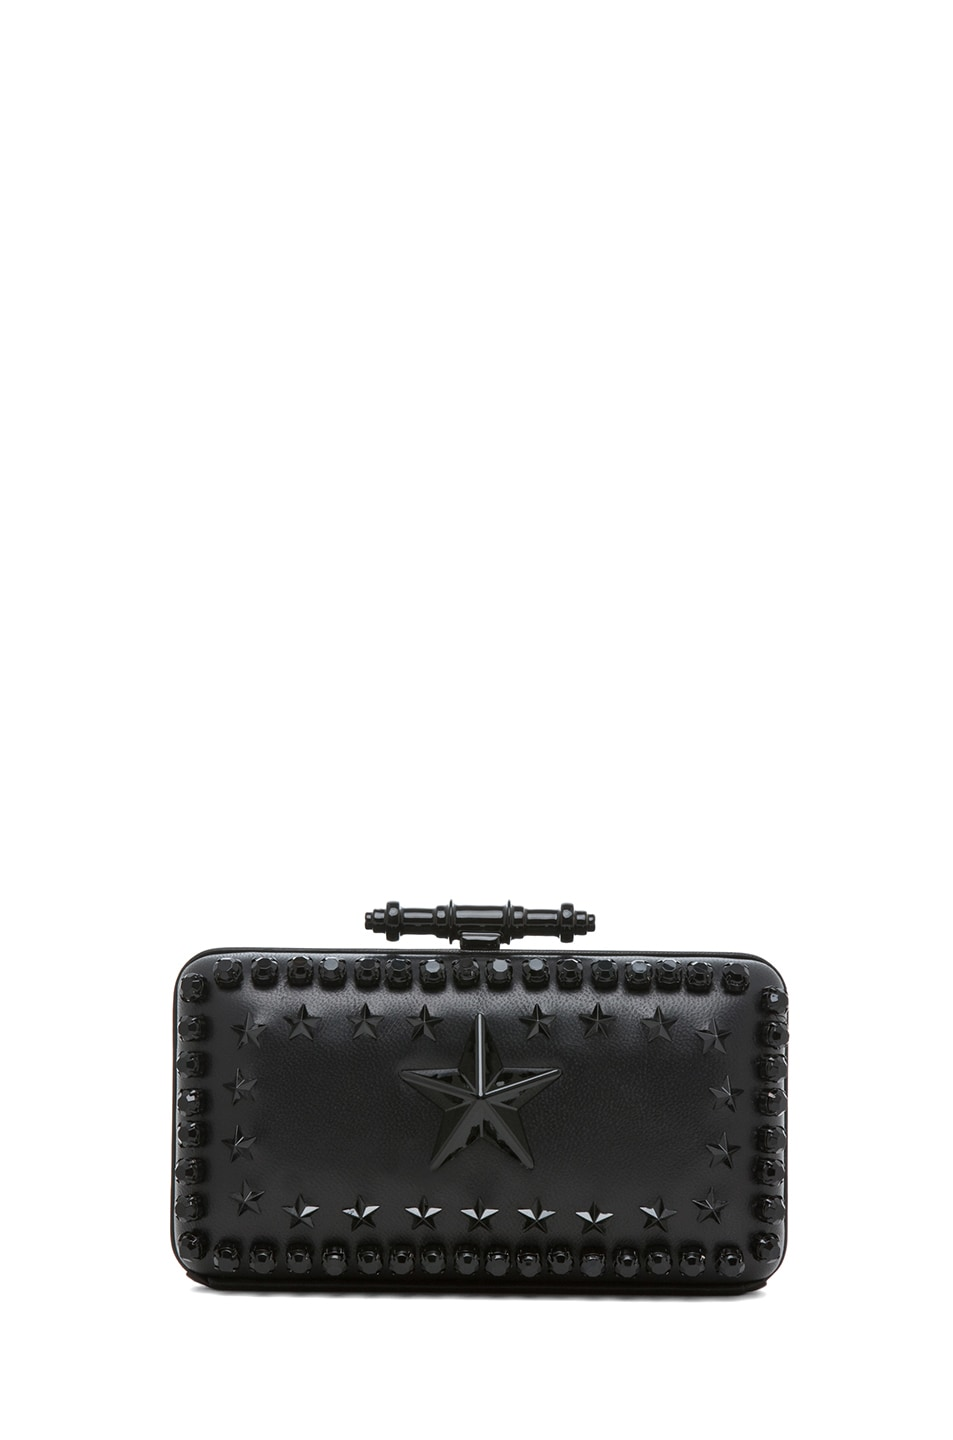 Image 2 of GIVENCHY Obsedia Star-Studded Minaudiere in Black